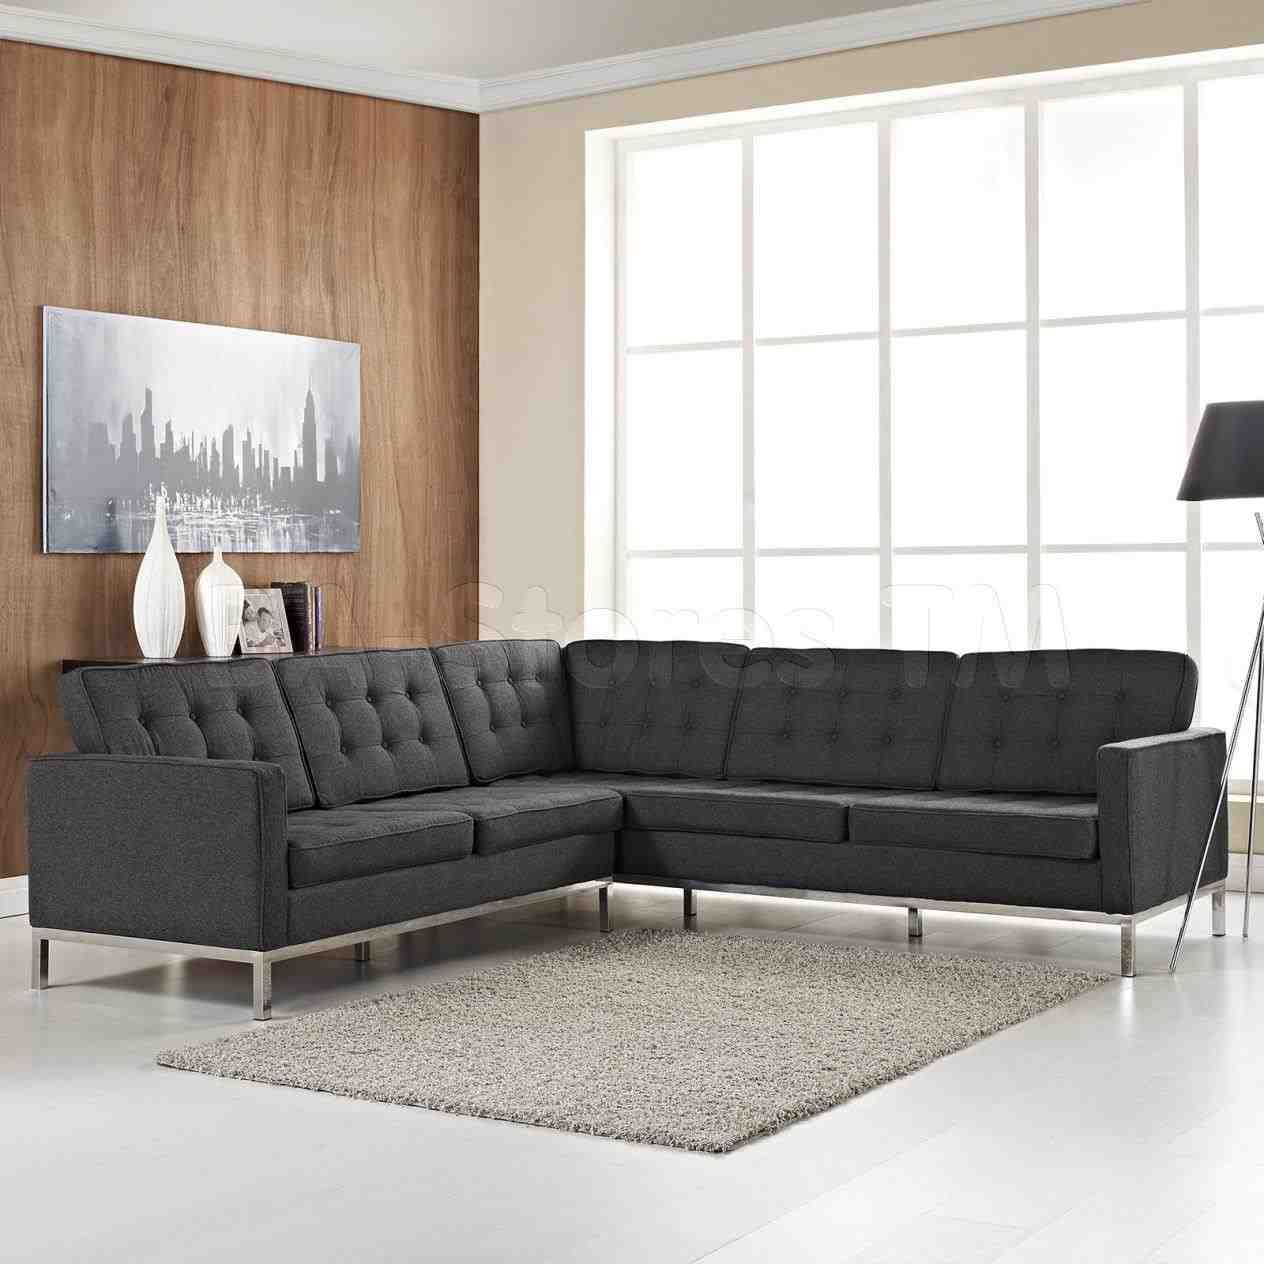 cheap sectionals couches furniture rug cheap sectional couches rh za pinterest com